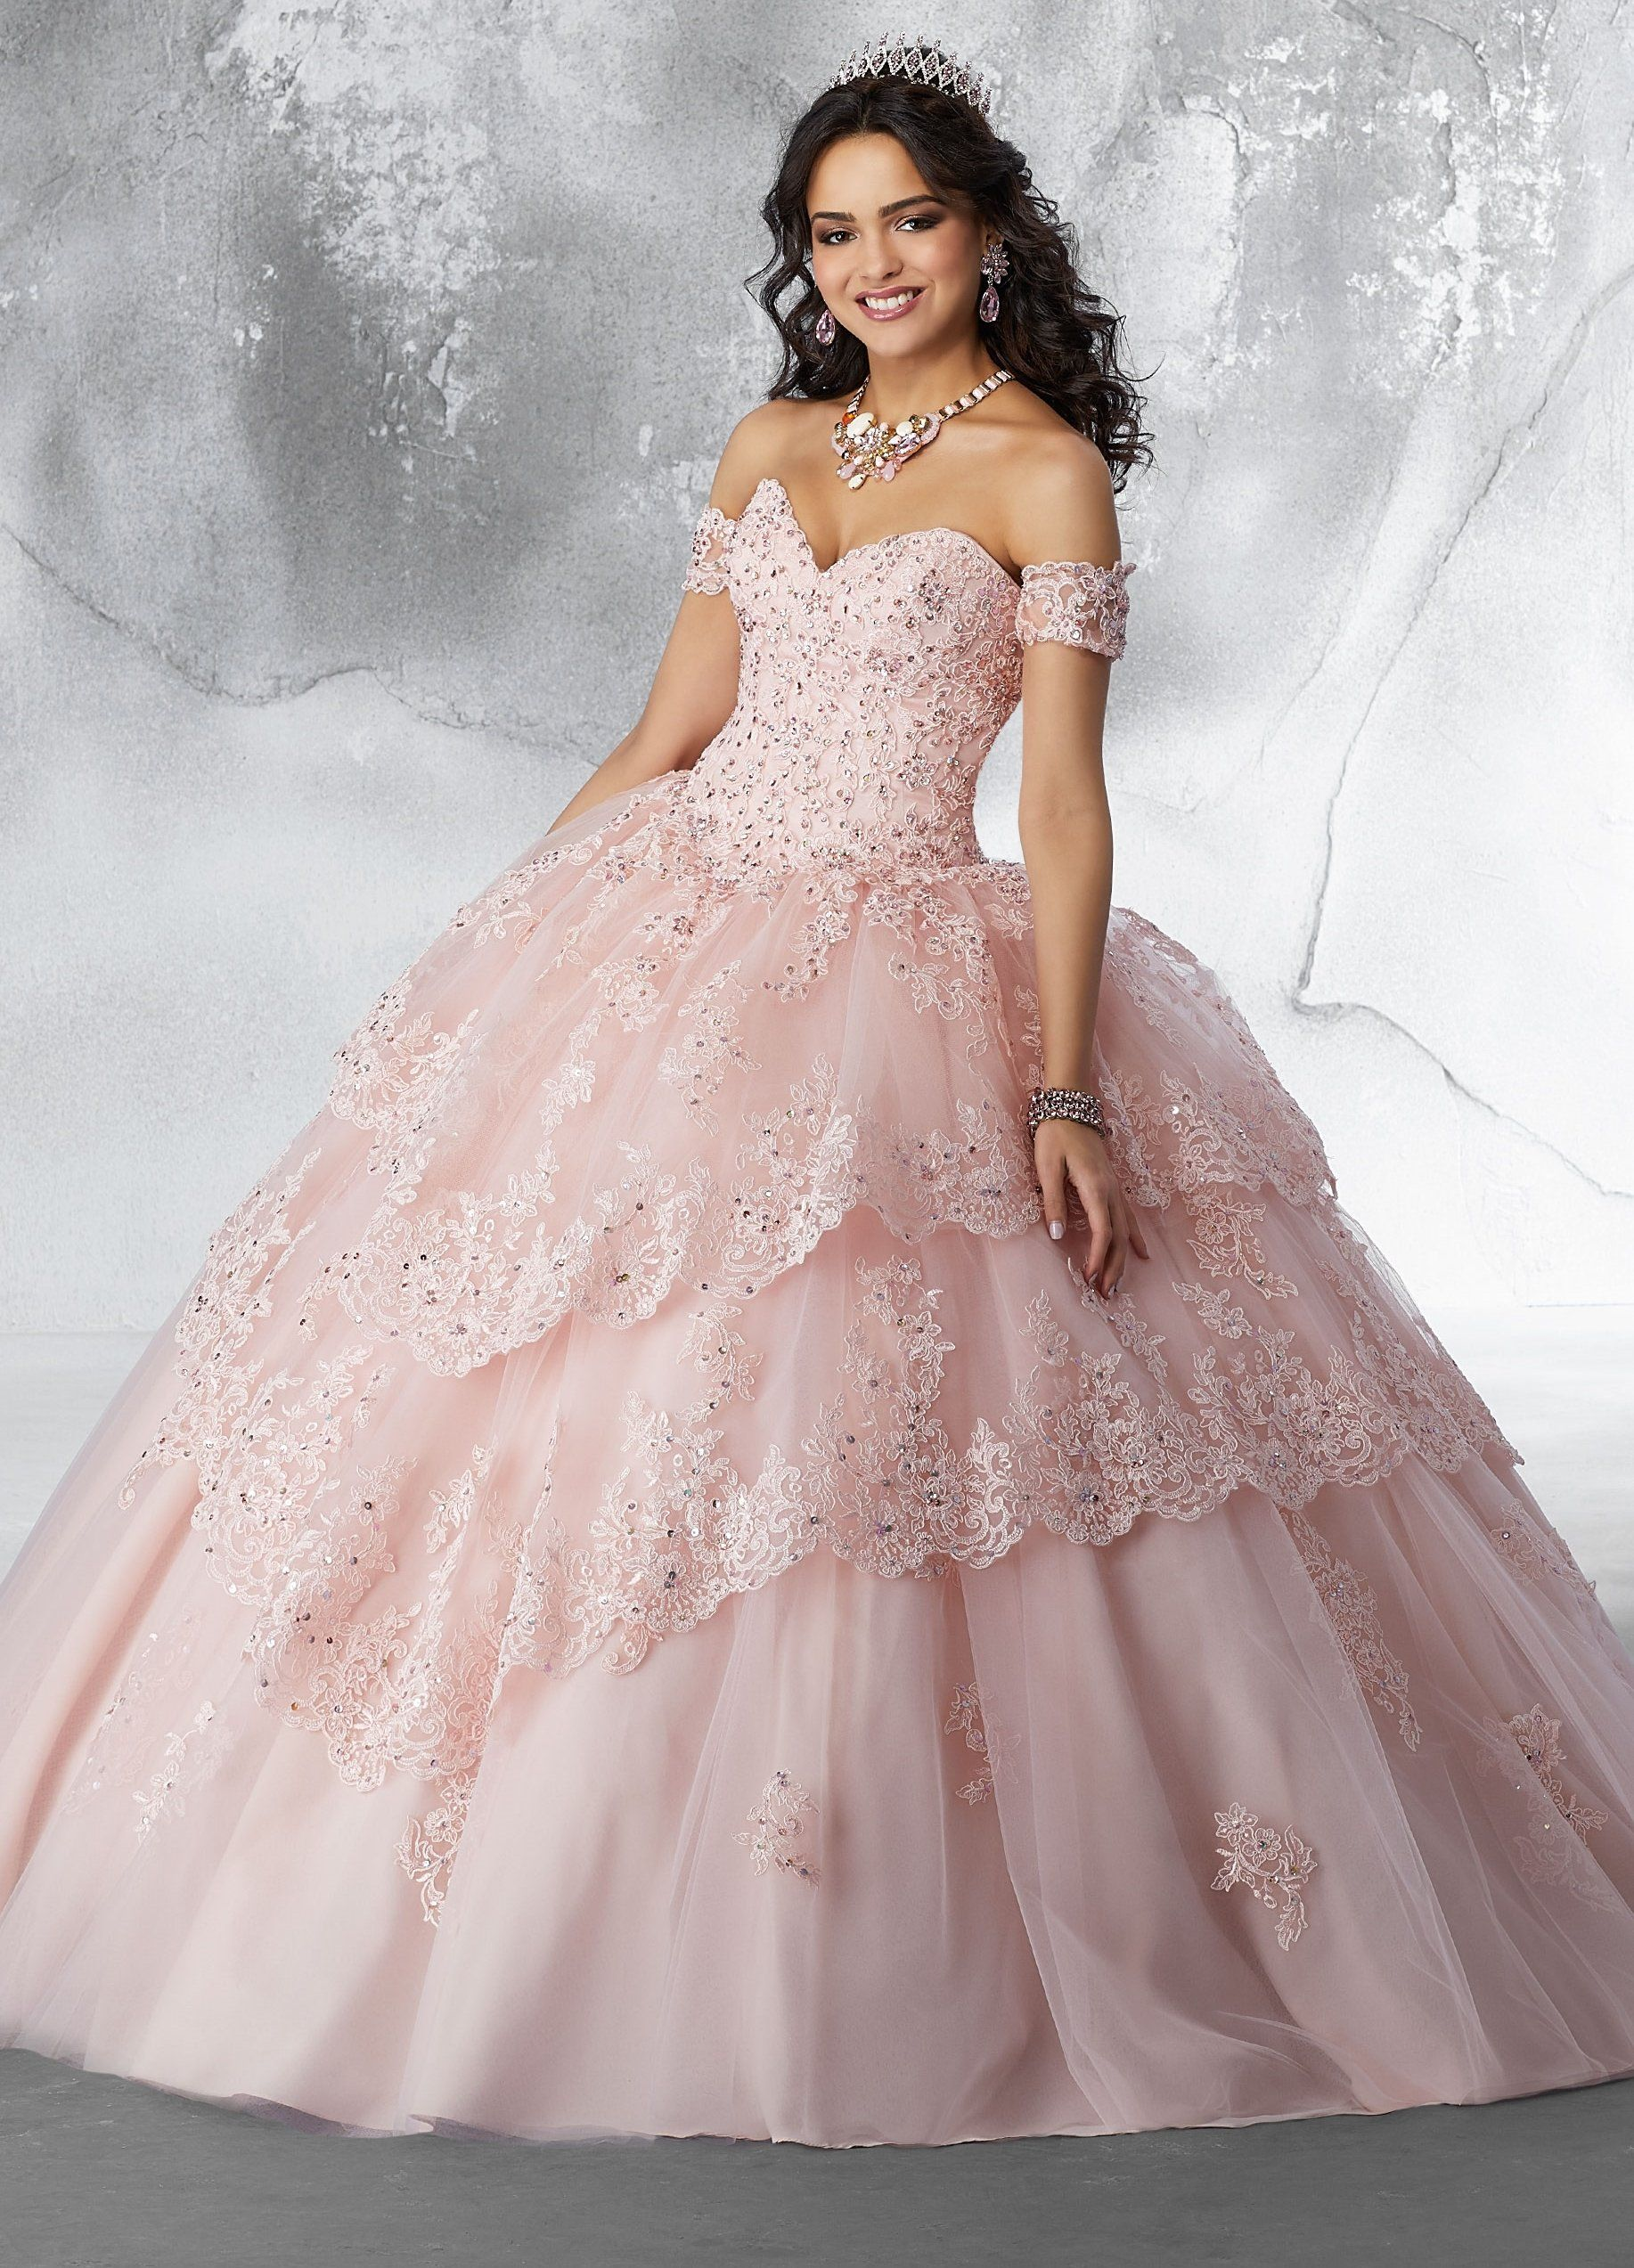 268949b07f3 Strapless Lace Quinceanera Dress by Mori Lee Vizcaya 89190 in 2019 ...